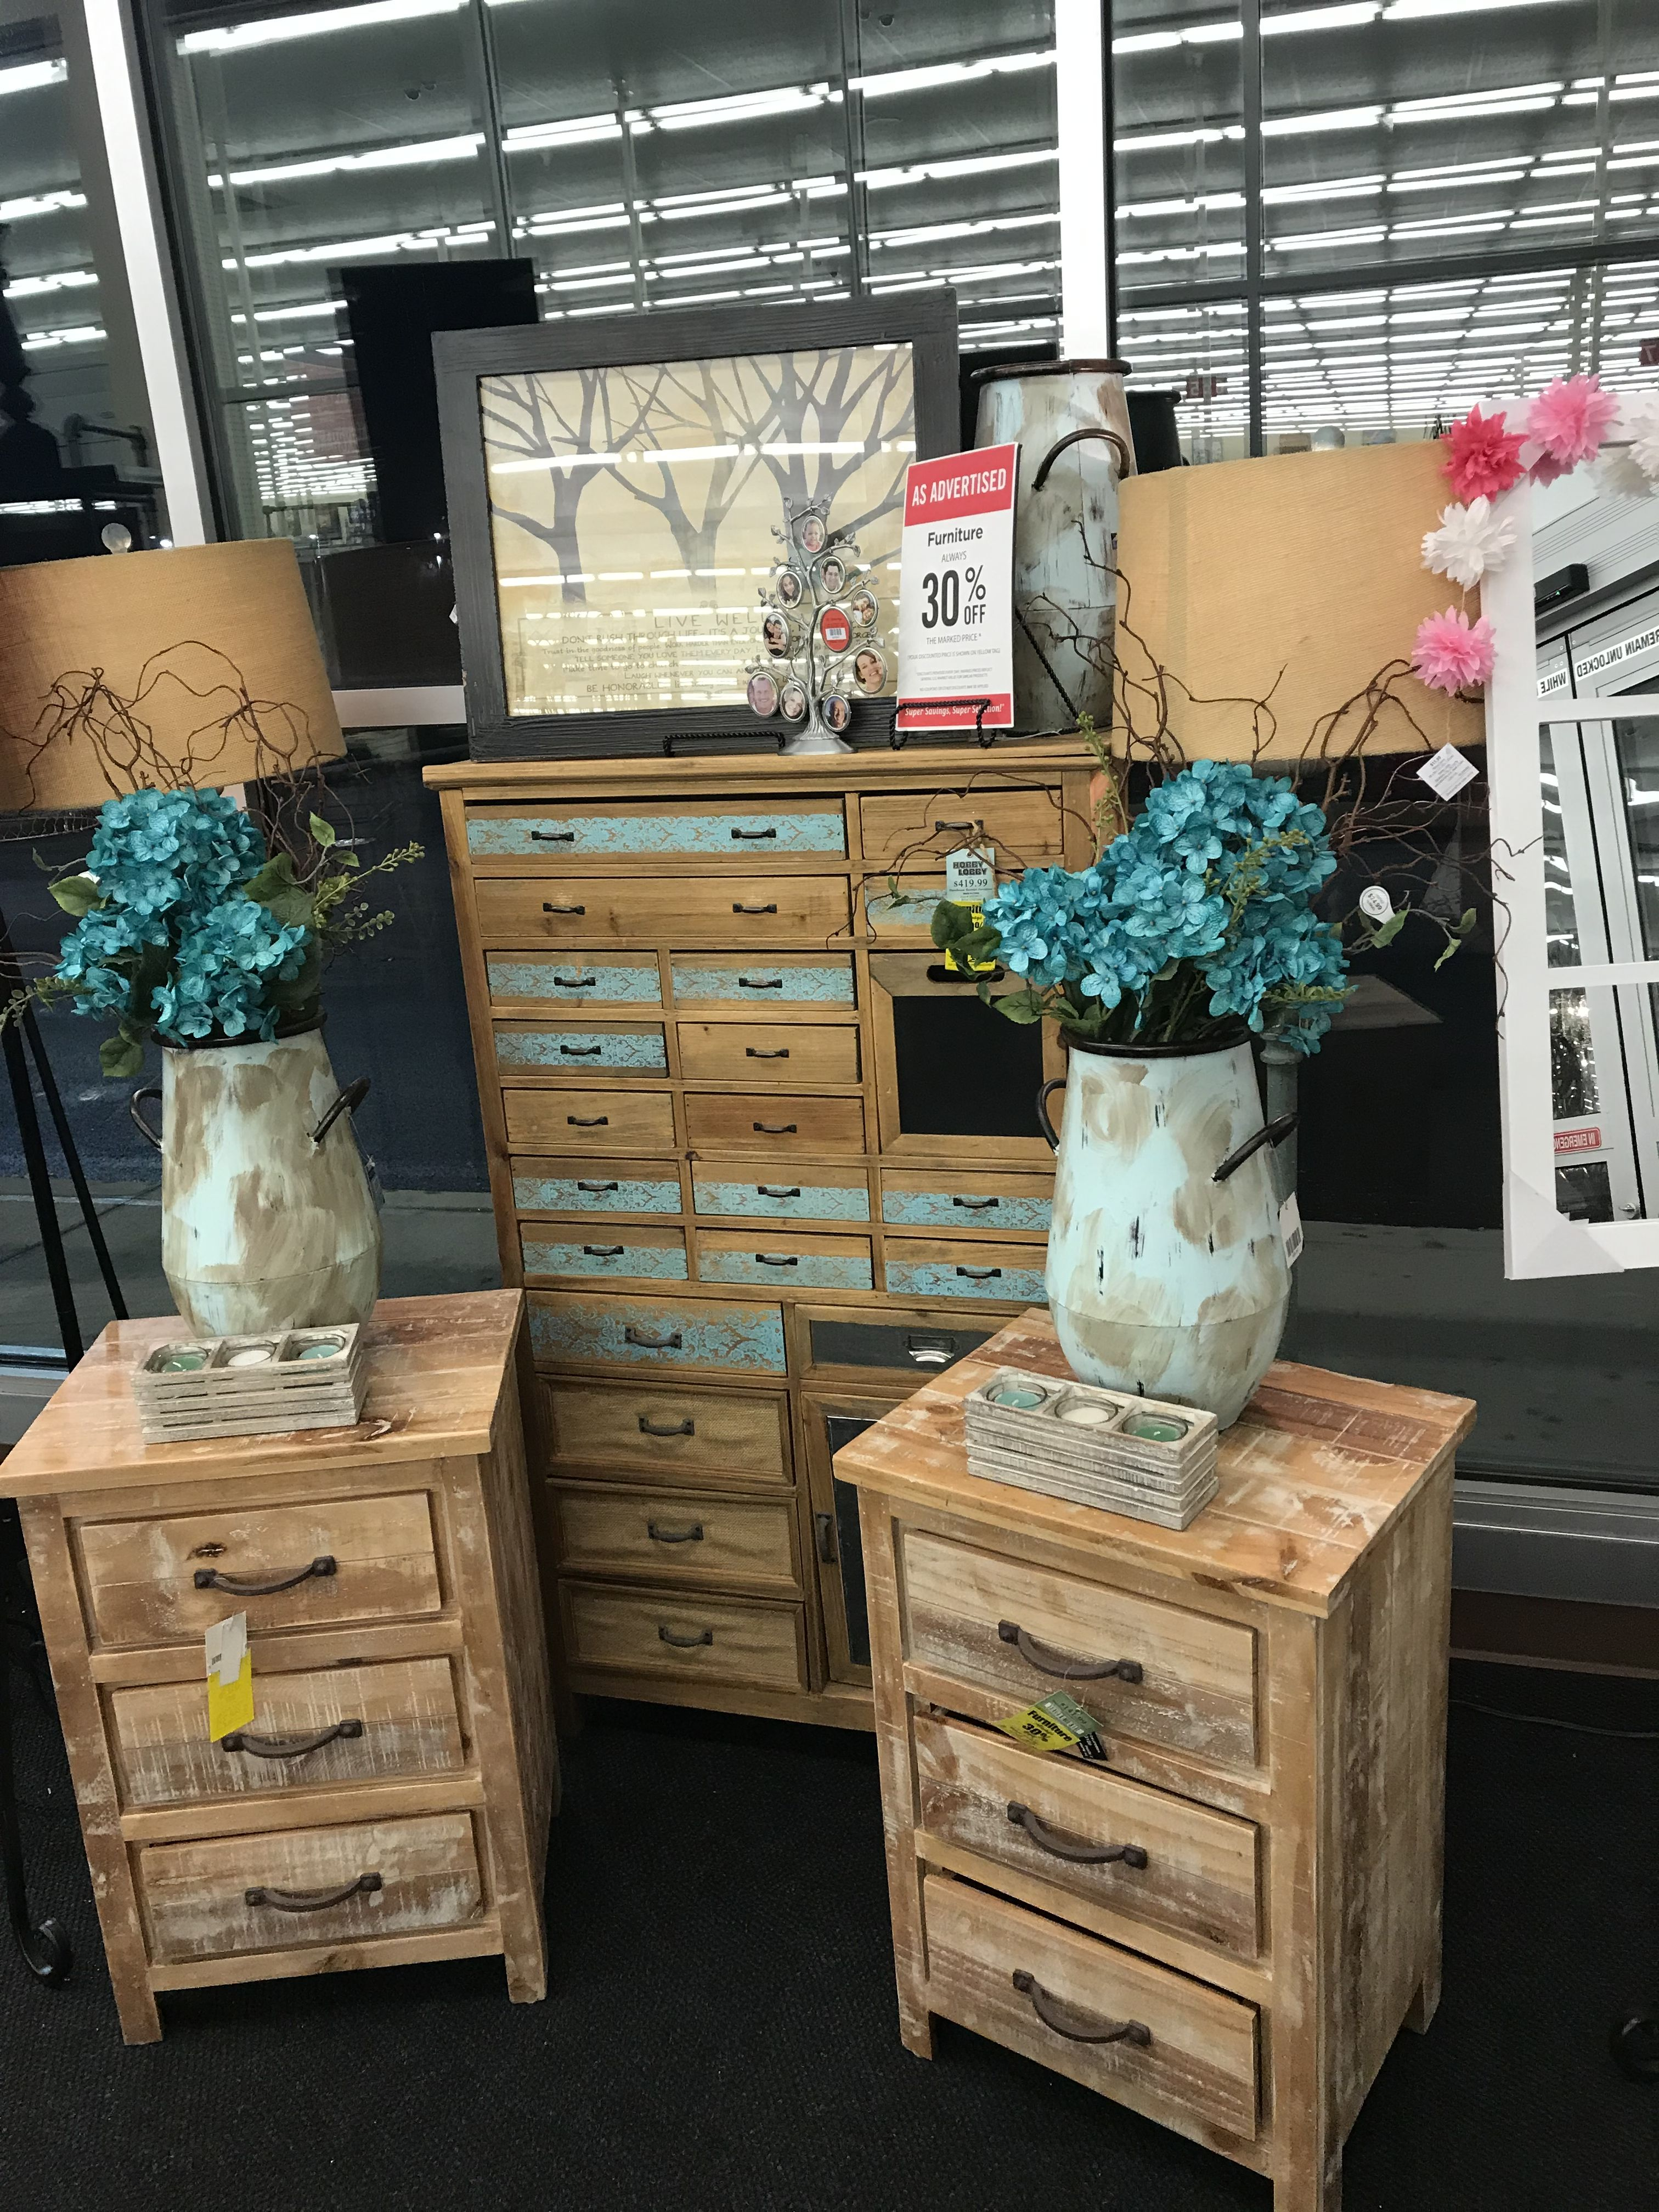 Pin by Stacy Crum on Decorating at Hobby Lobby | Decor ...